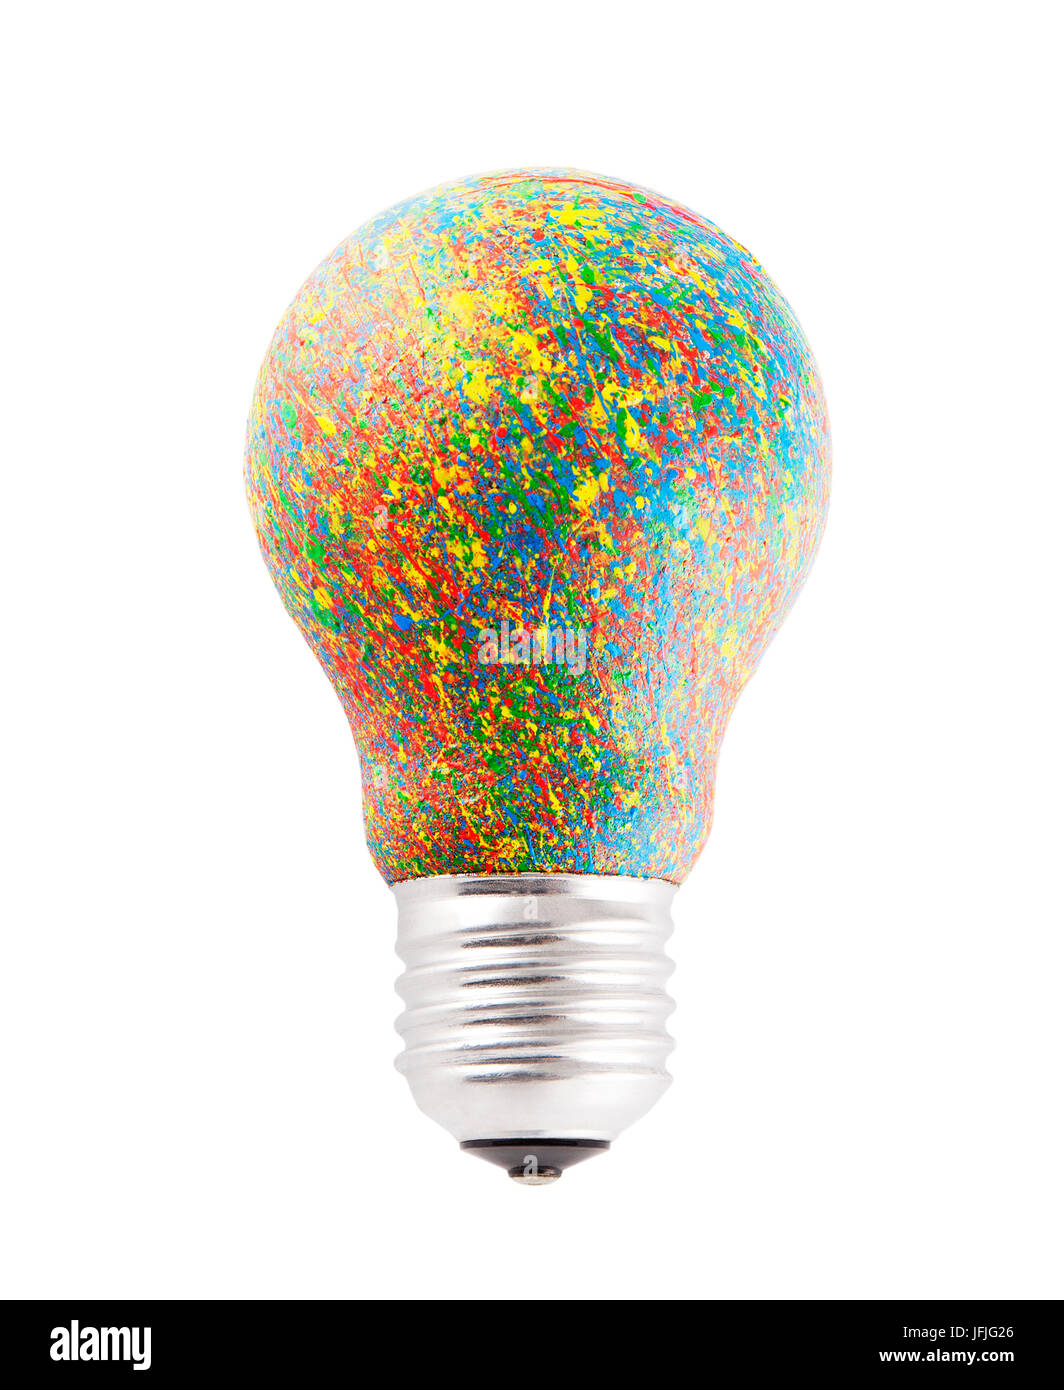 Colorful painted bulb isolated on white with clipping path - Stock Image